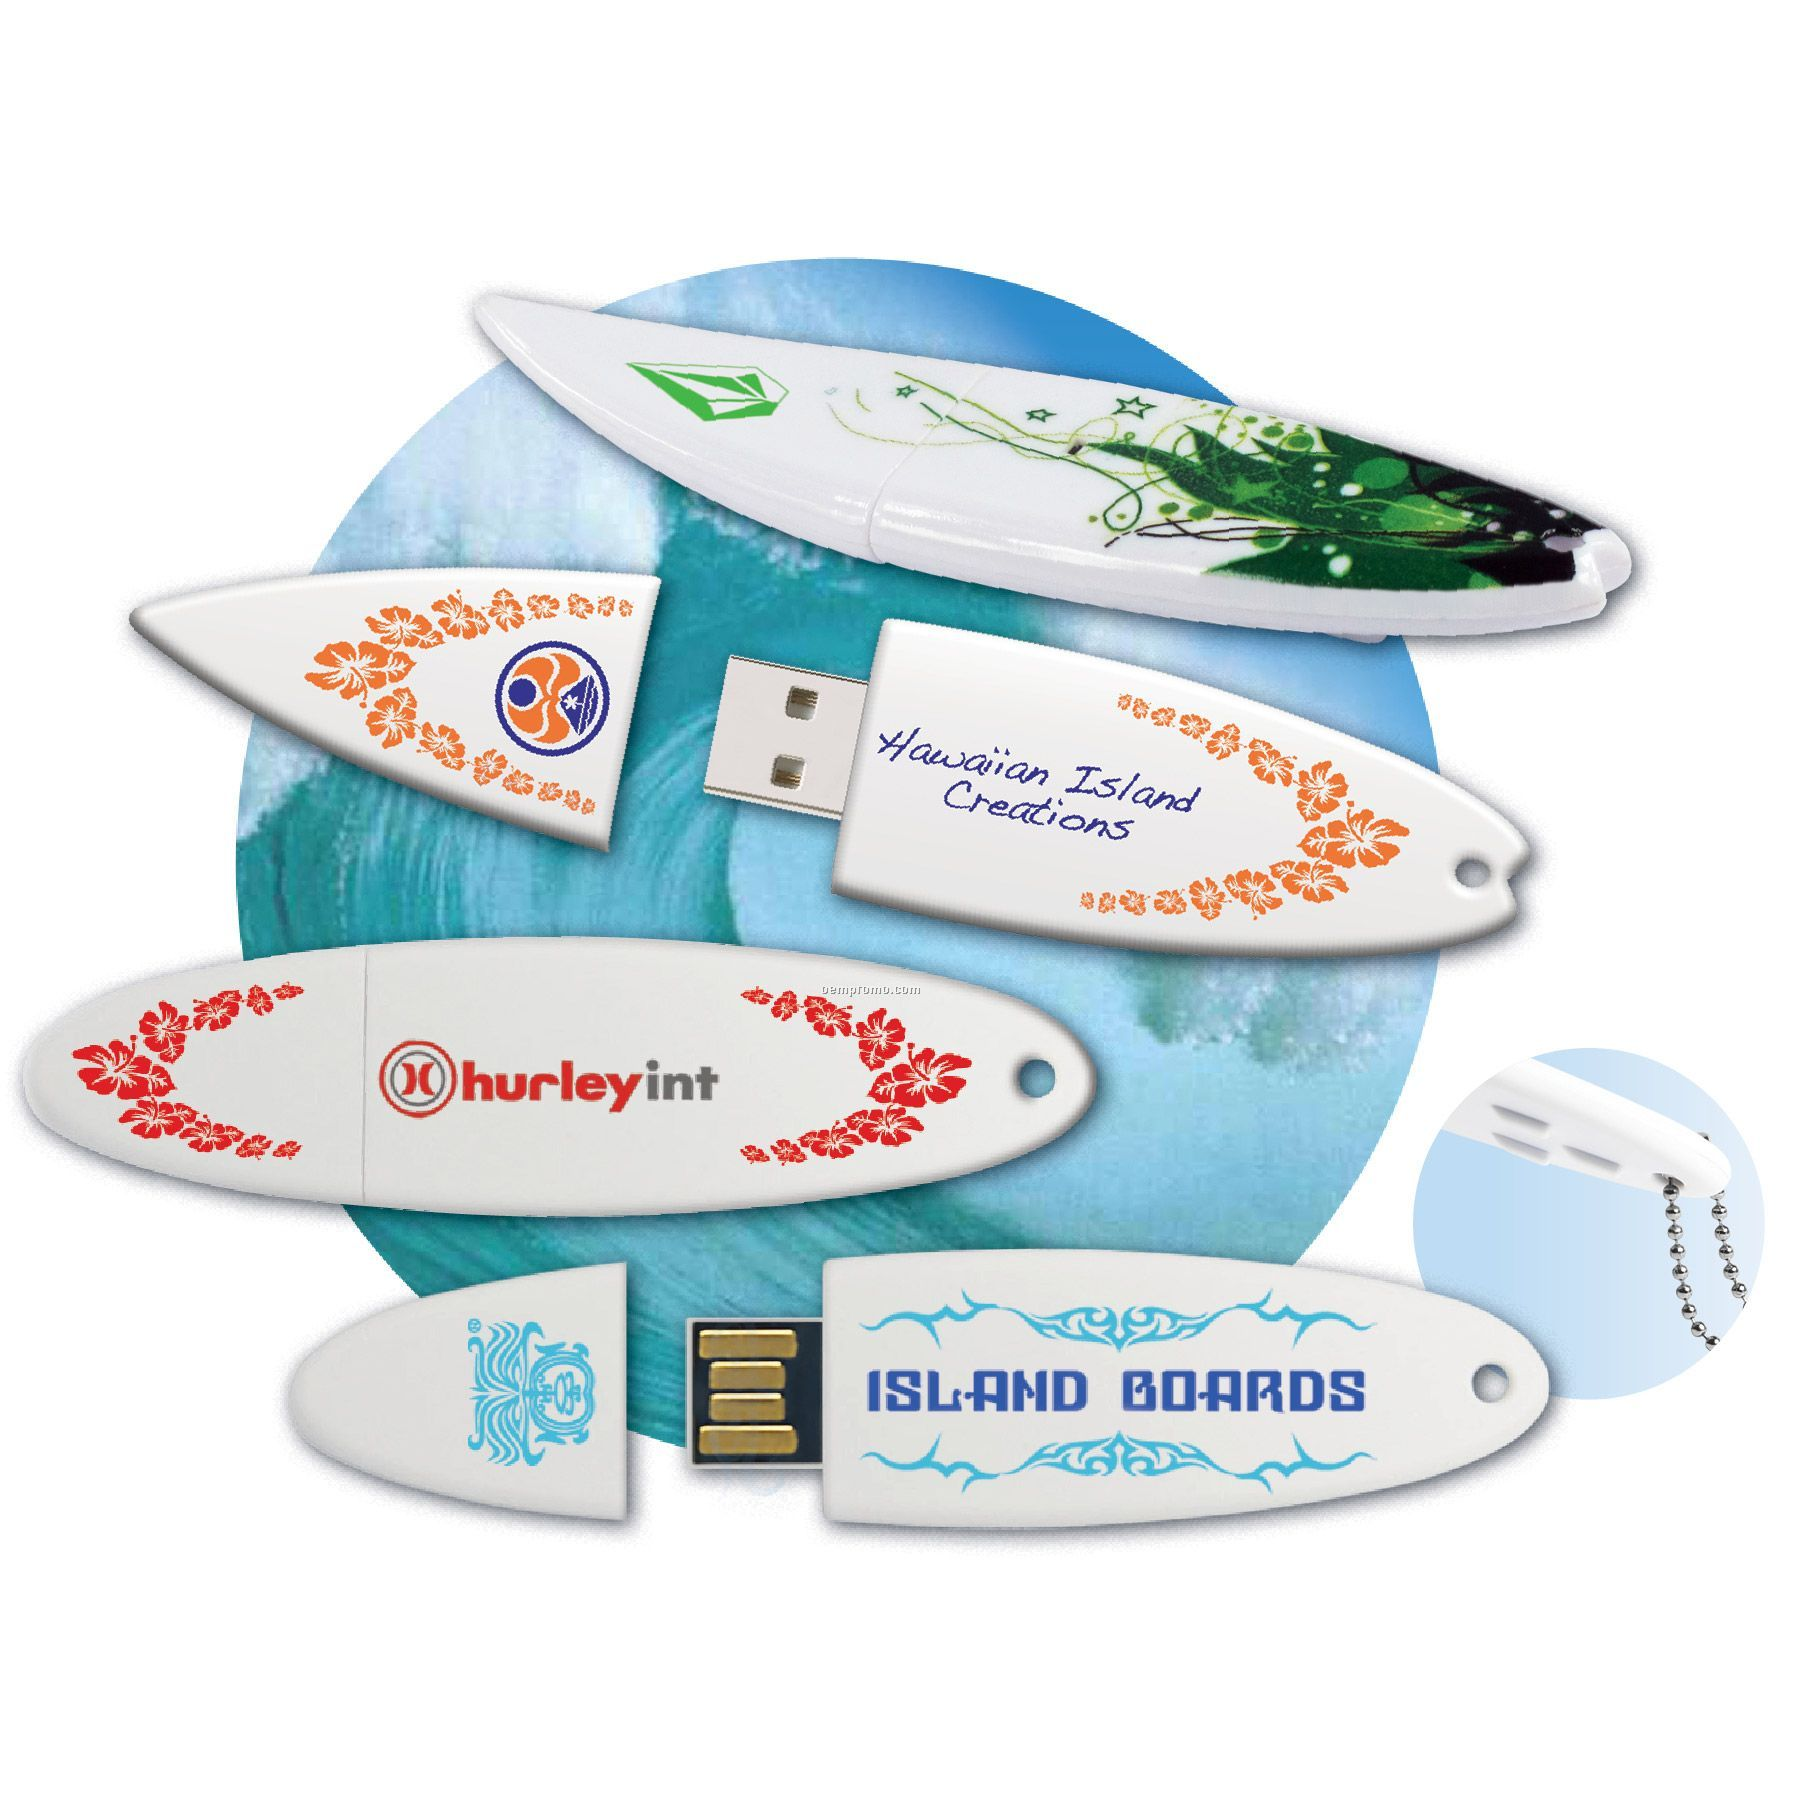 USB 2.o Surfboard Drives Sr